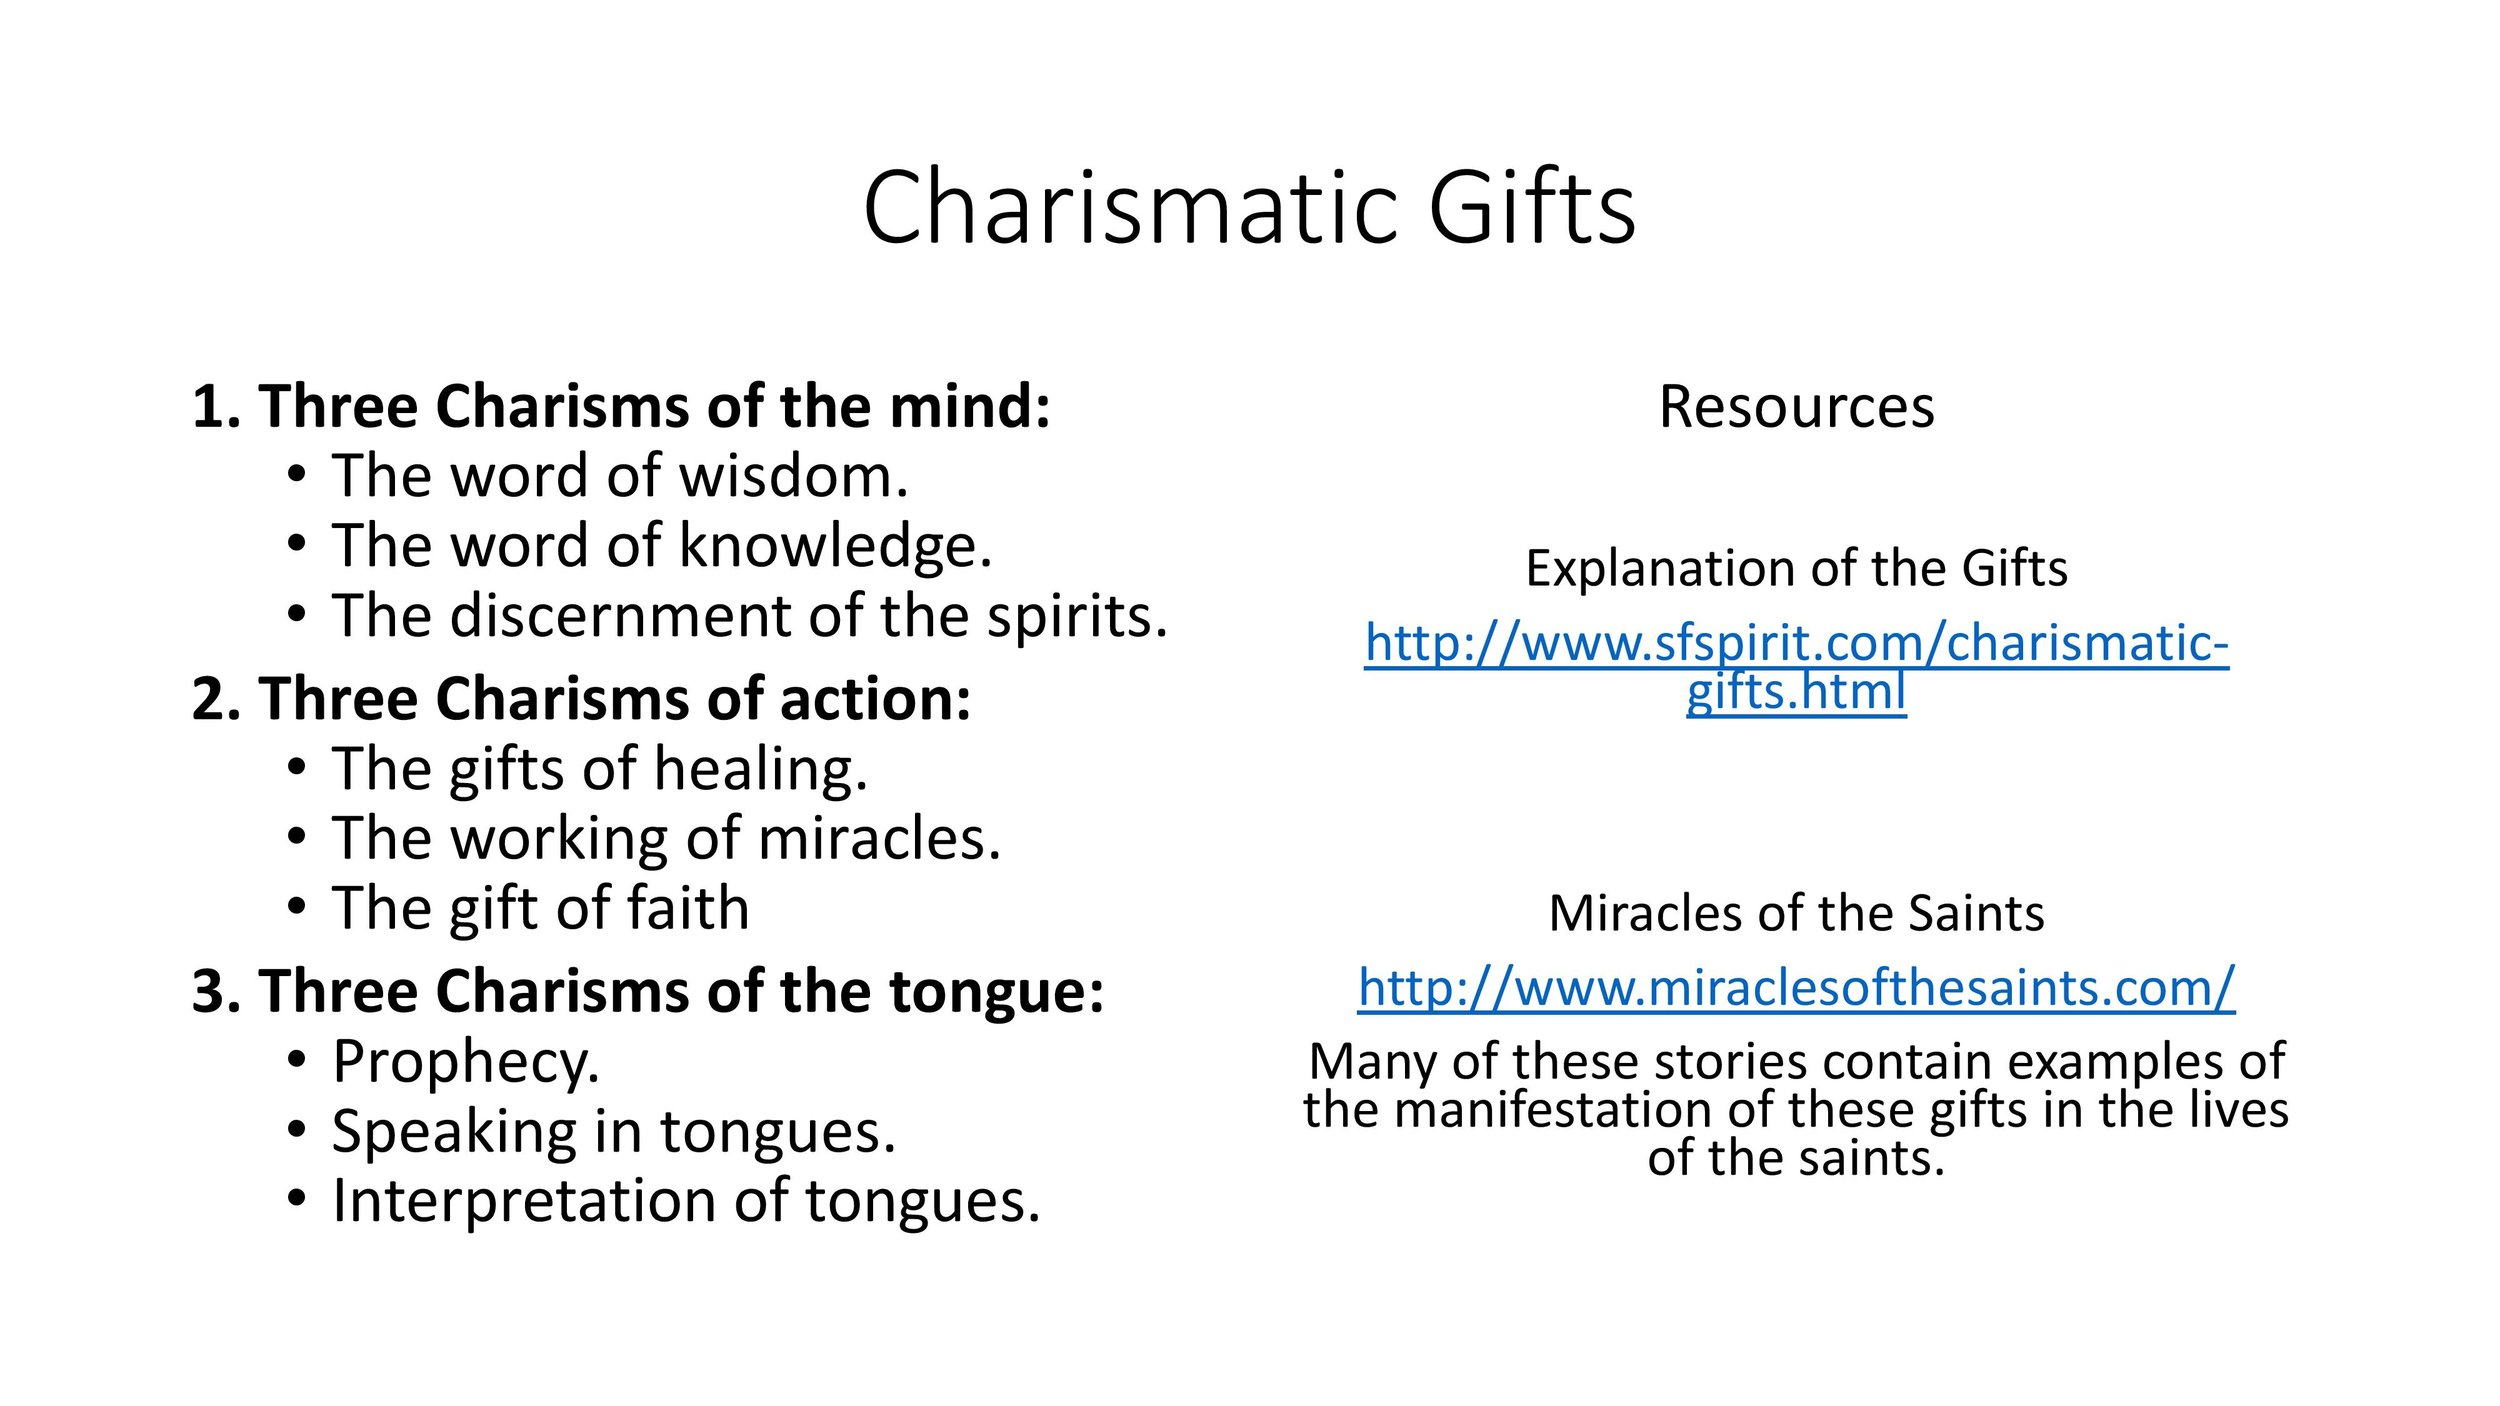 Explanation of the Gifts  http://www.sfspirit.com/charismaticgifts.html    Miracles of the Saints  http://www.miraclesofthesaints.com/